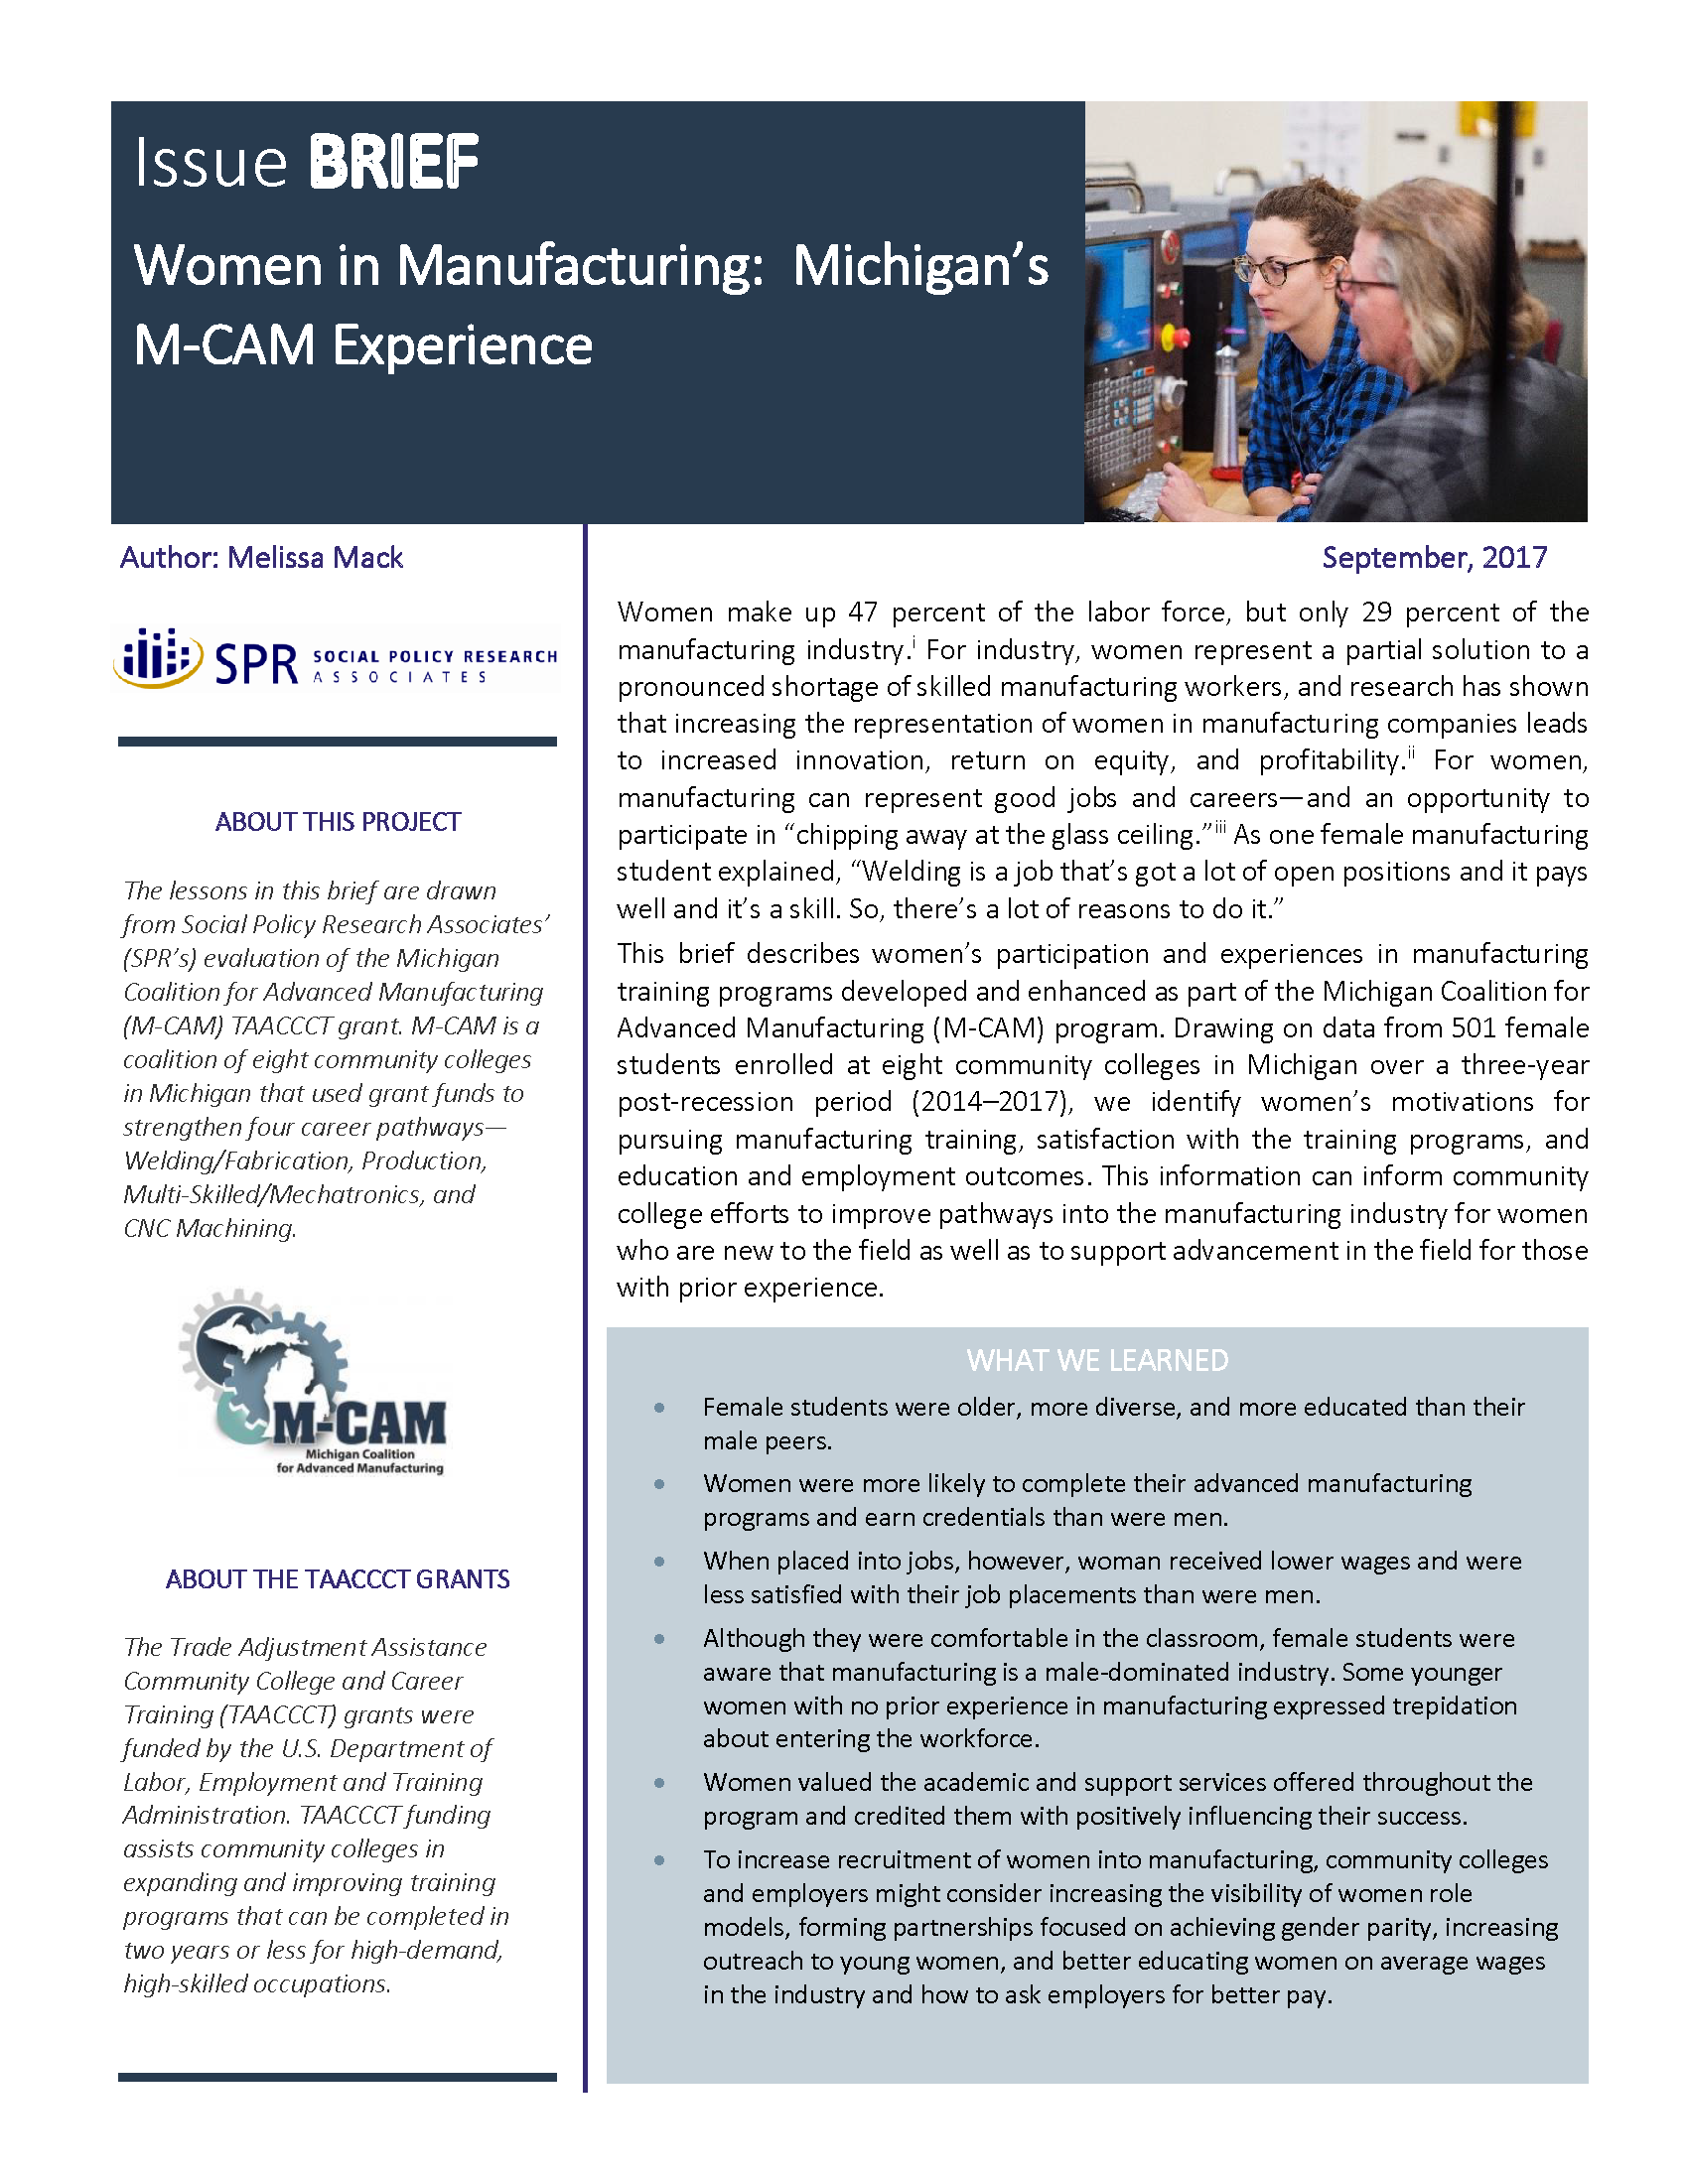 Cover of Women in Manufacturing: Michigan's M-CAM Experience Brief